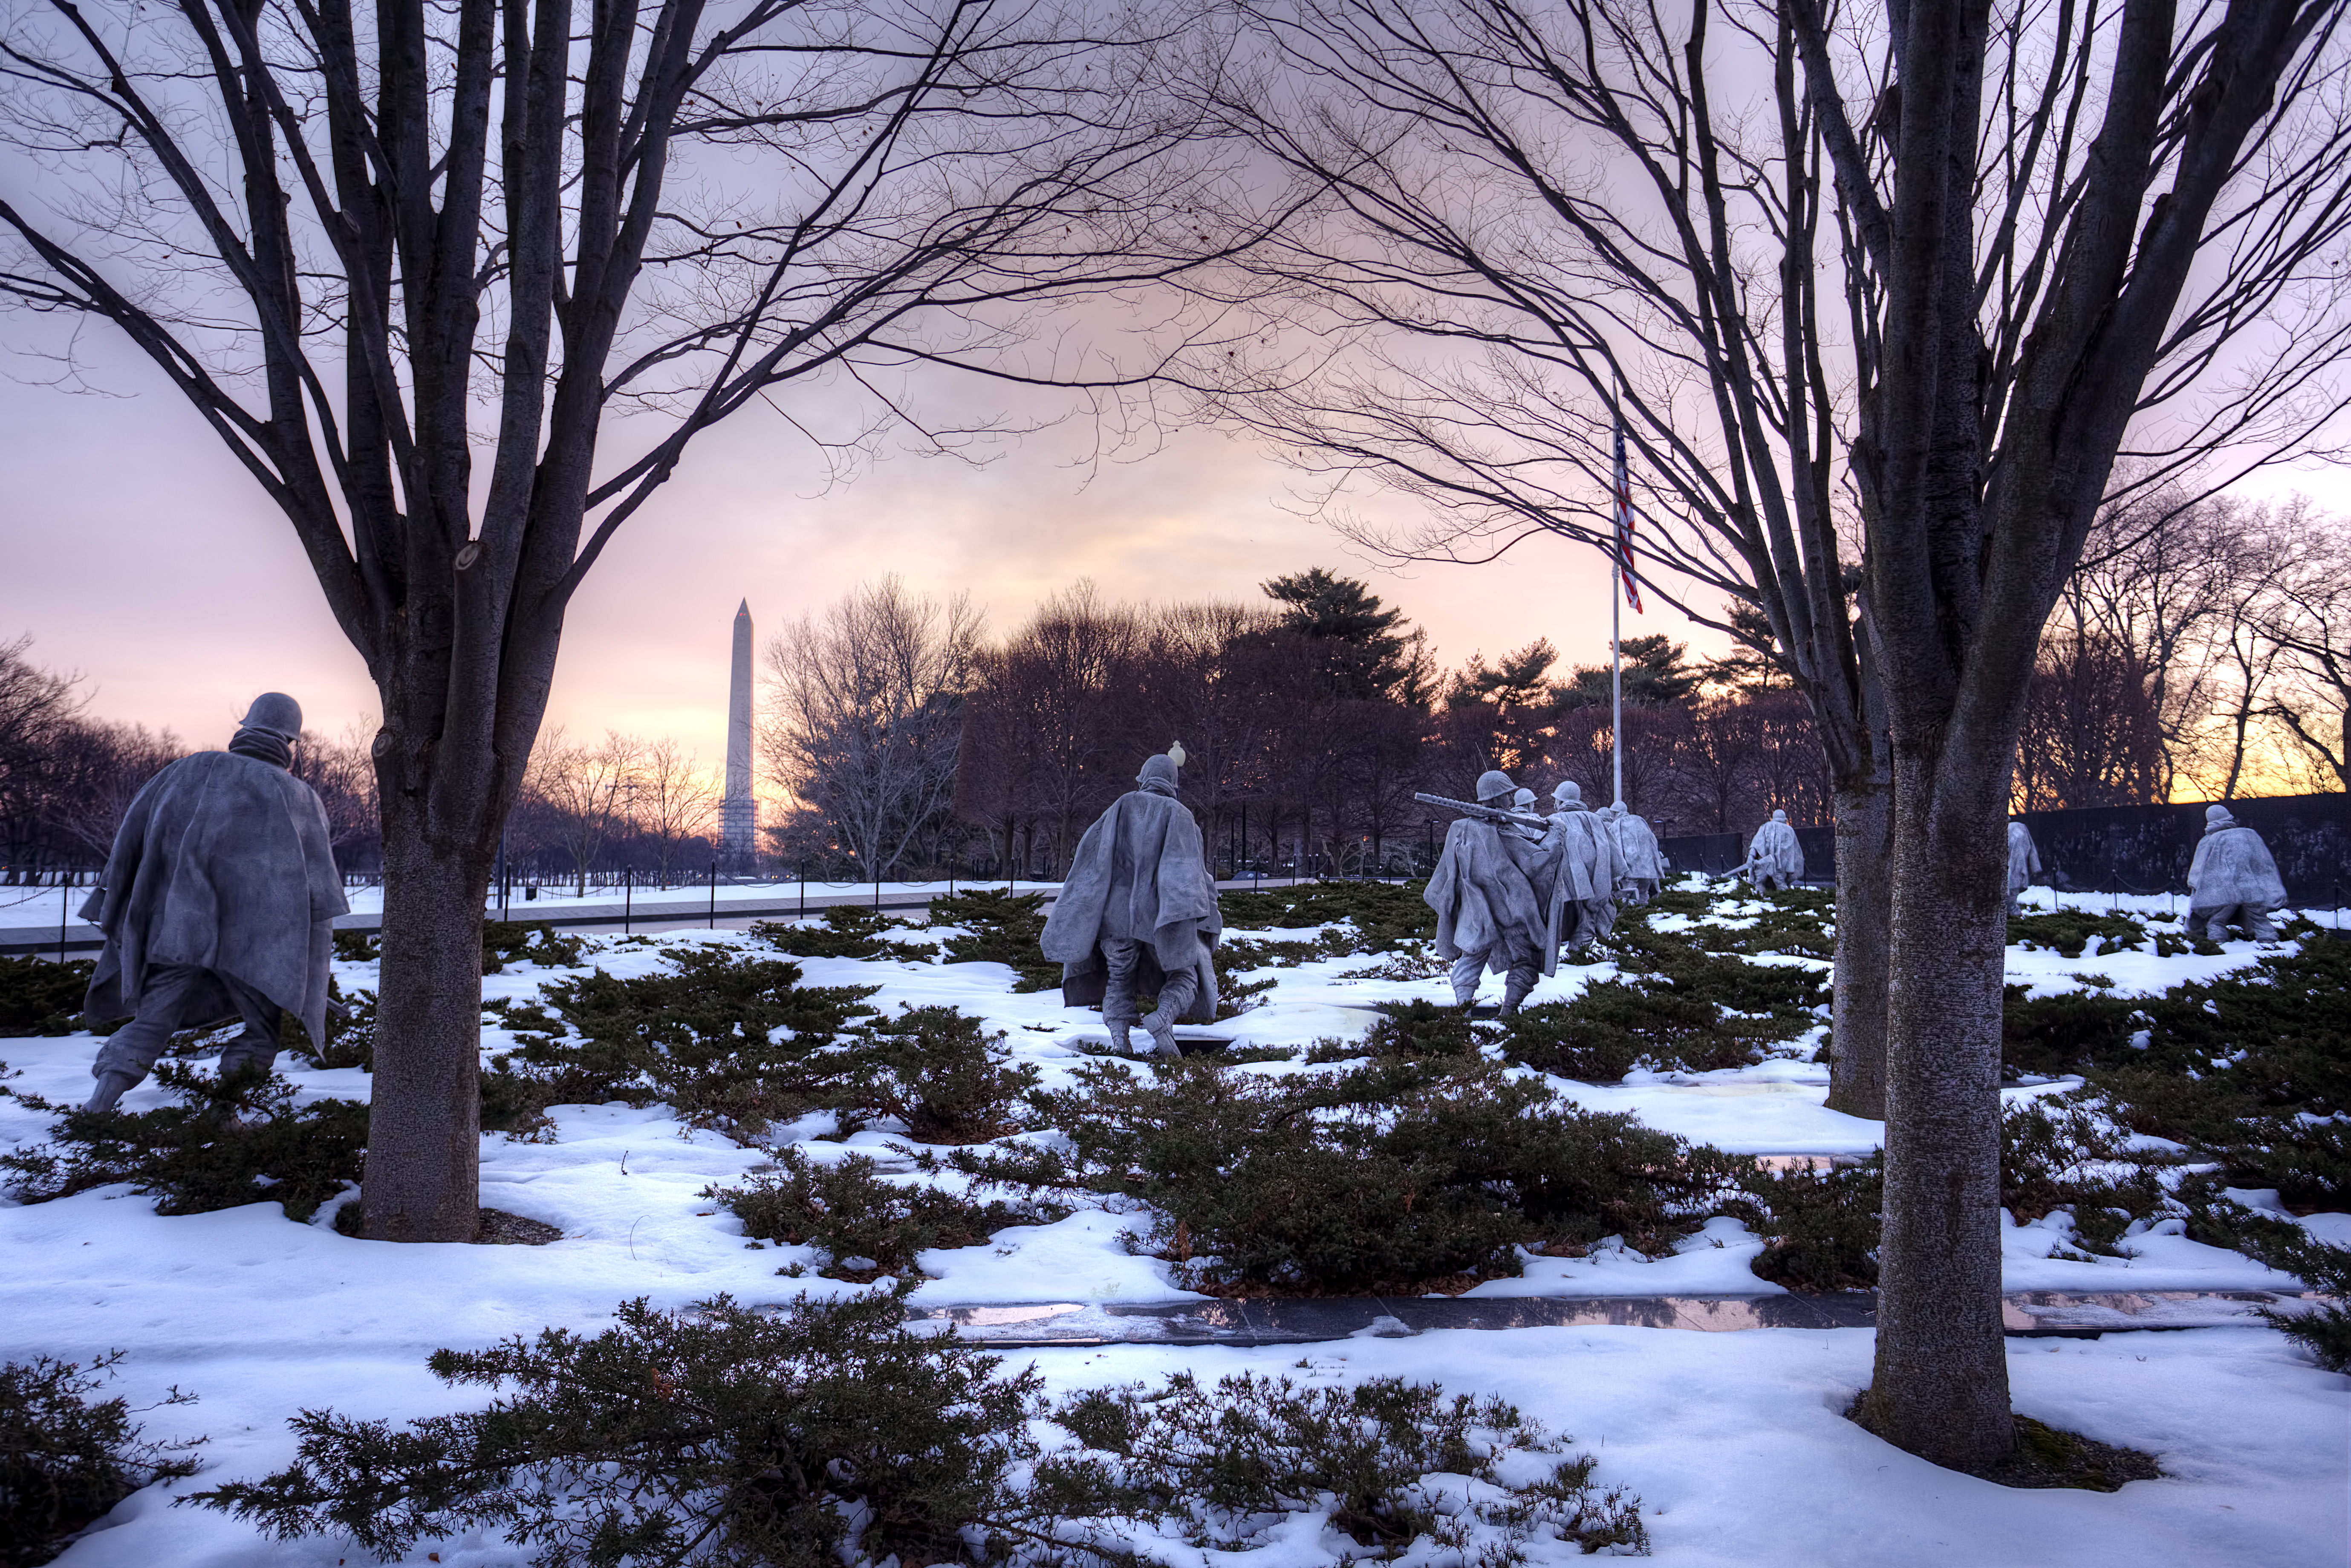 korean war memorial, washington dc, sunrise, early morning, snow, winter, travel, washington monument, trees, united states, usa, korean war